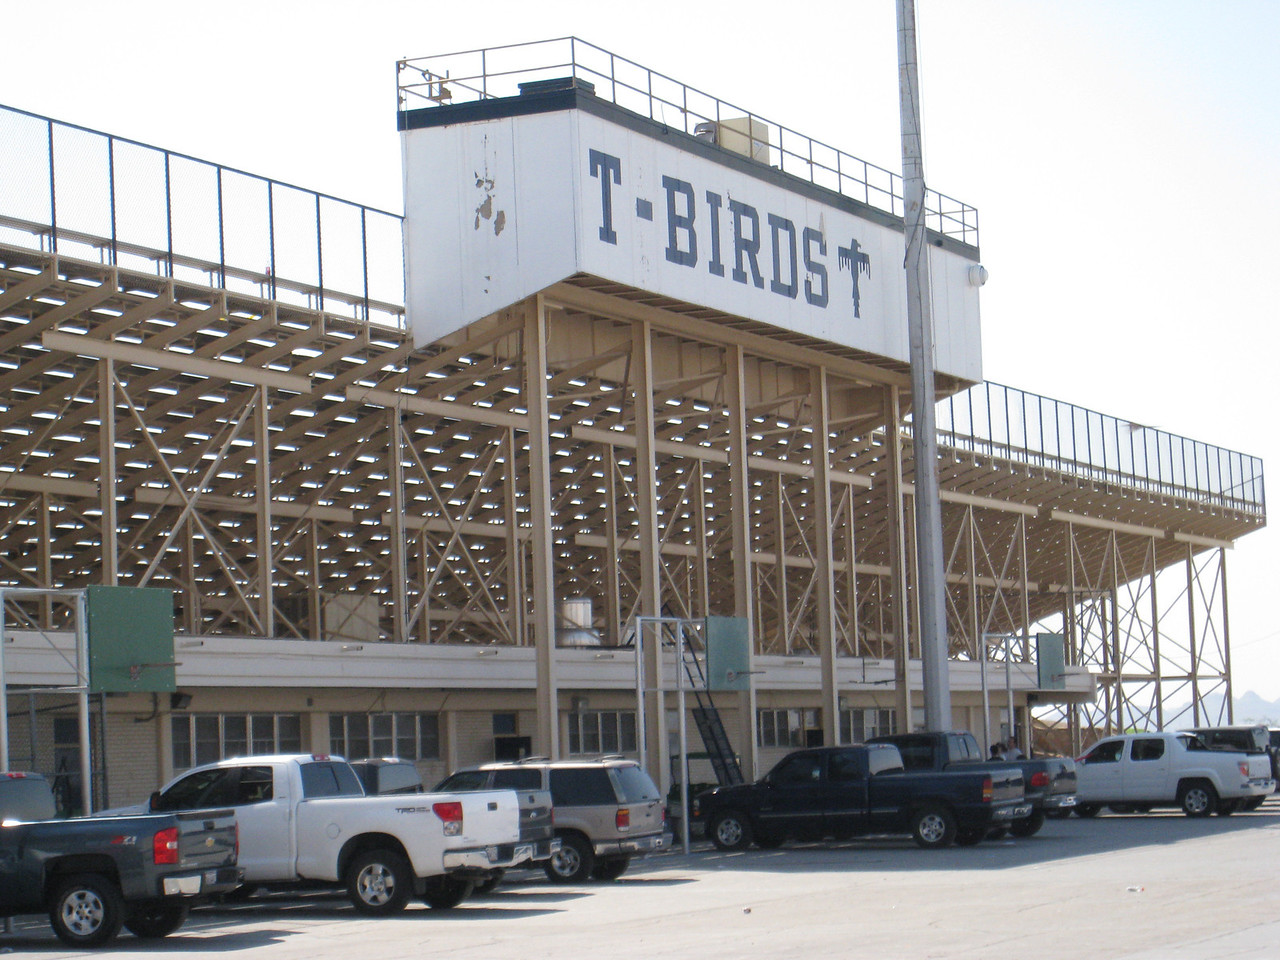 The back of the football stadium at Coronado.